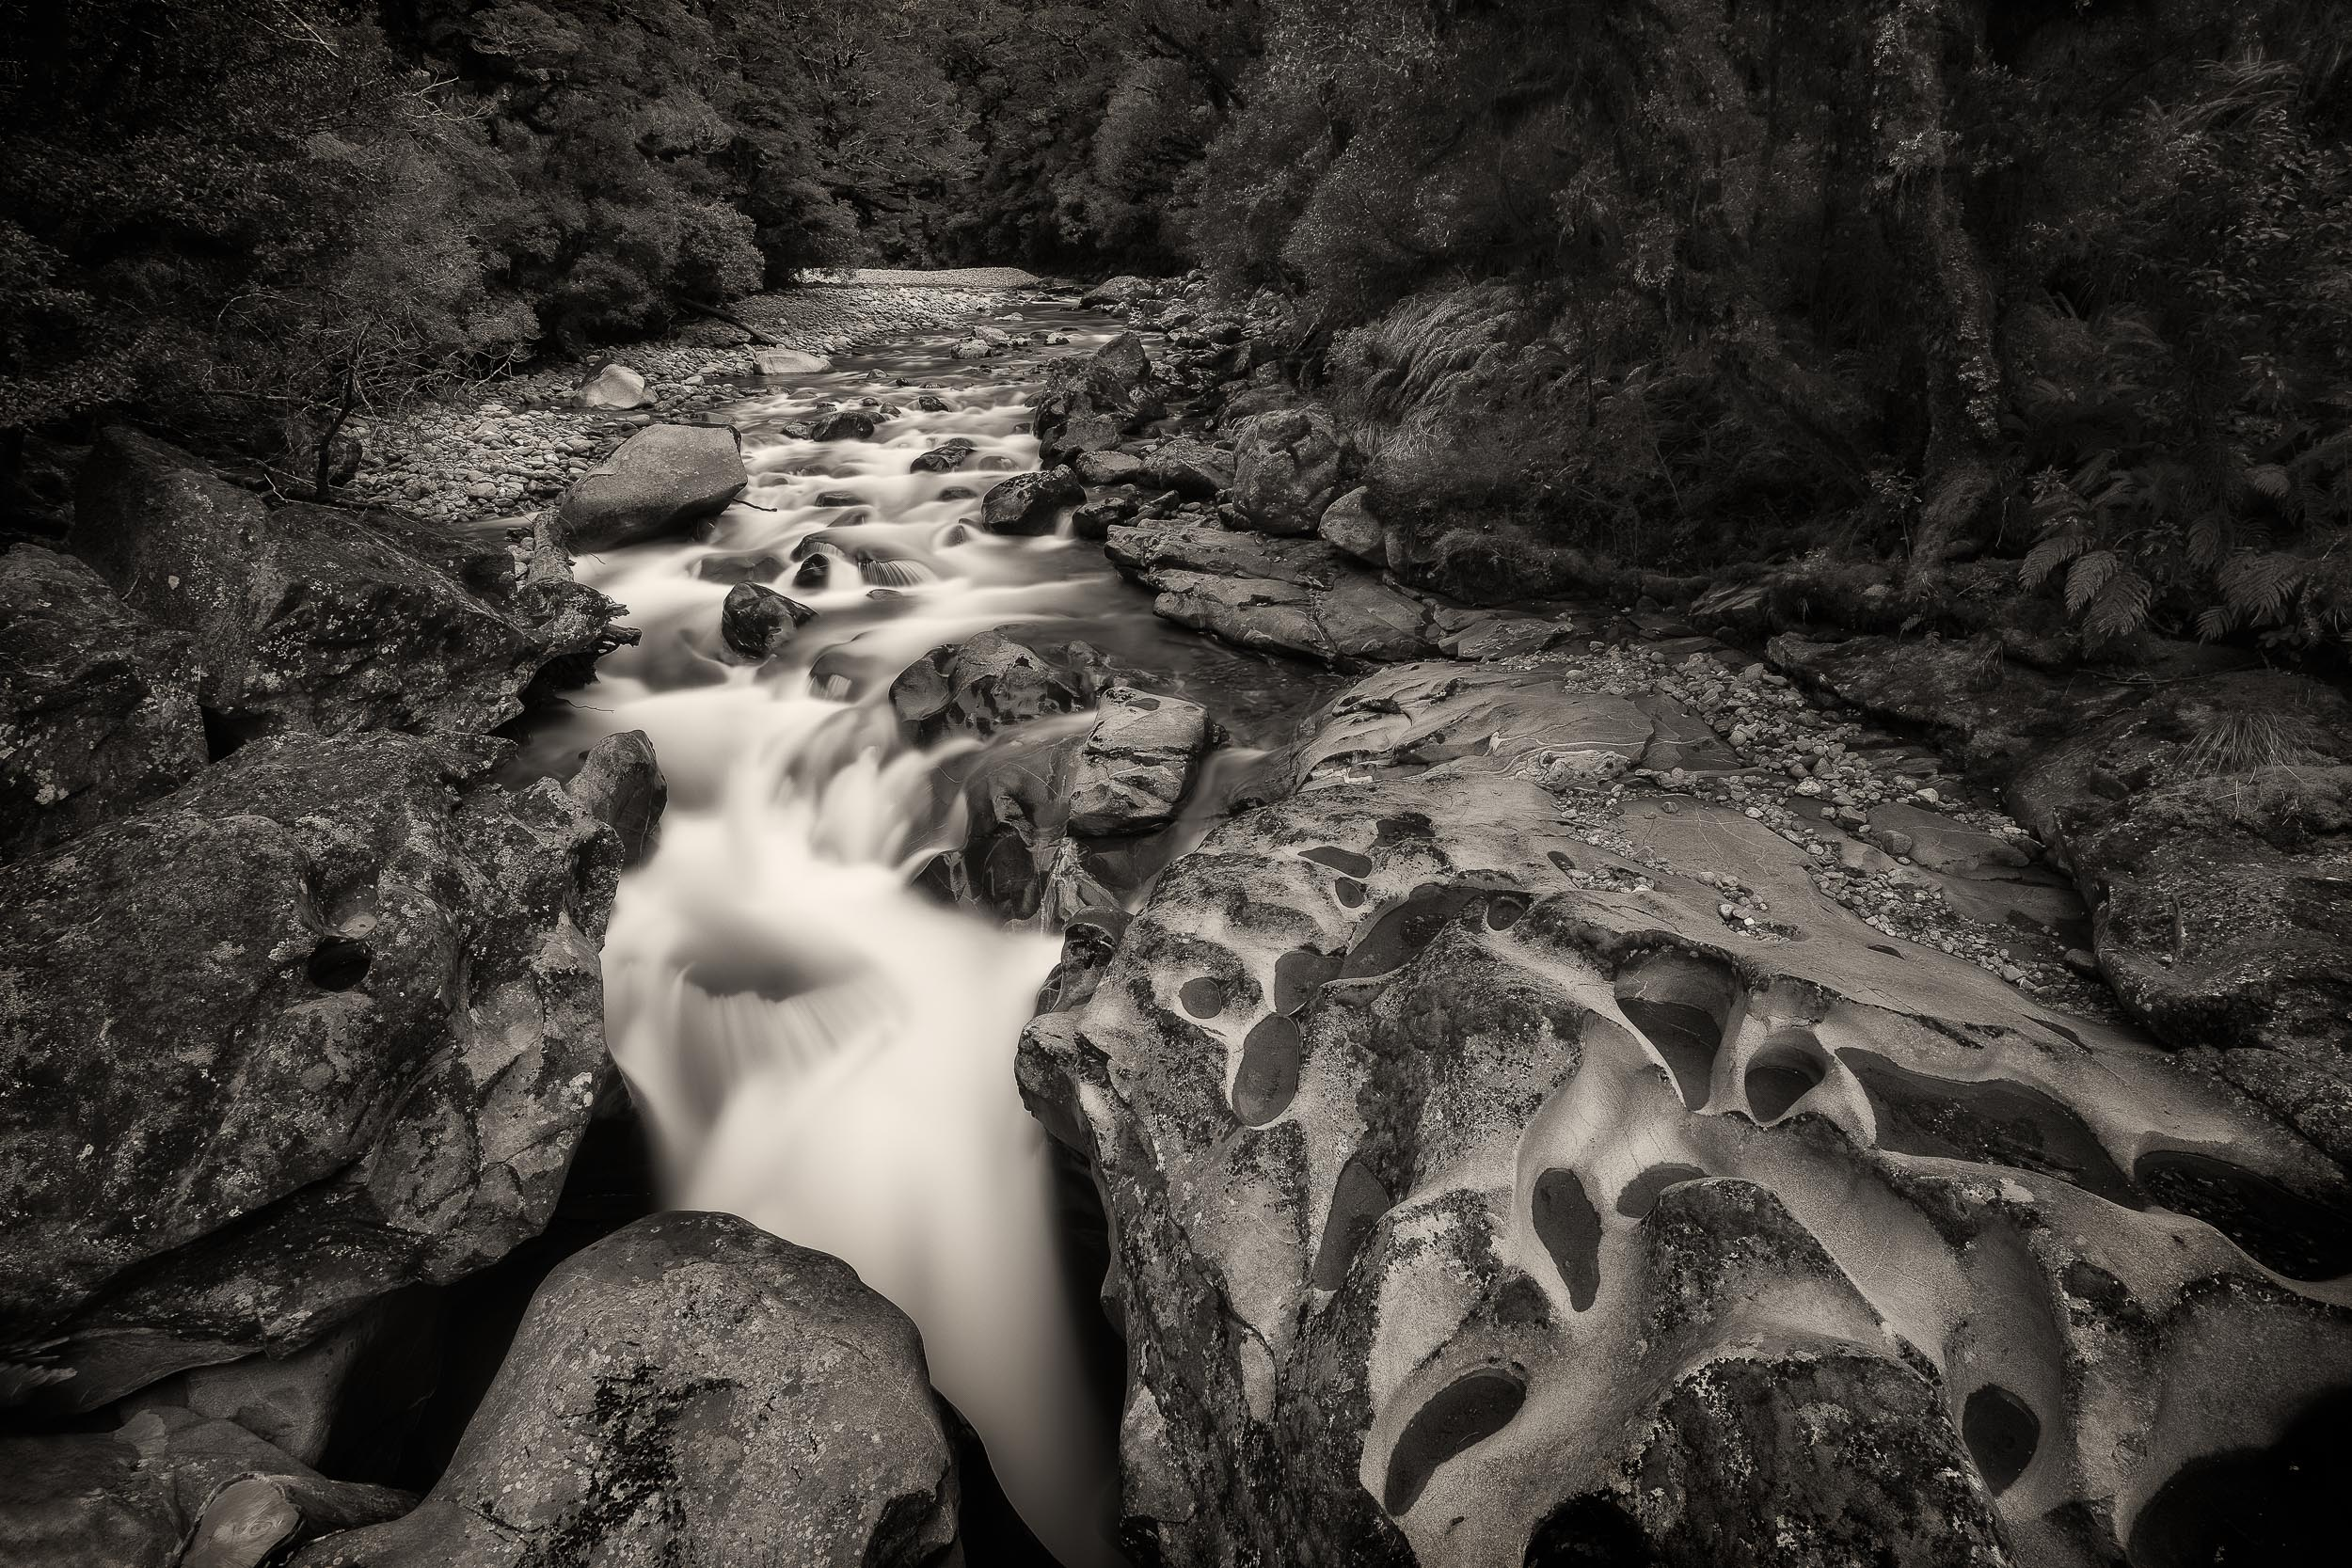 A fast moving    river cascades over rocks    near    Milford Sound, New Zealand   .